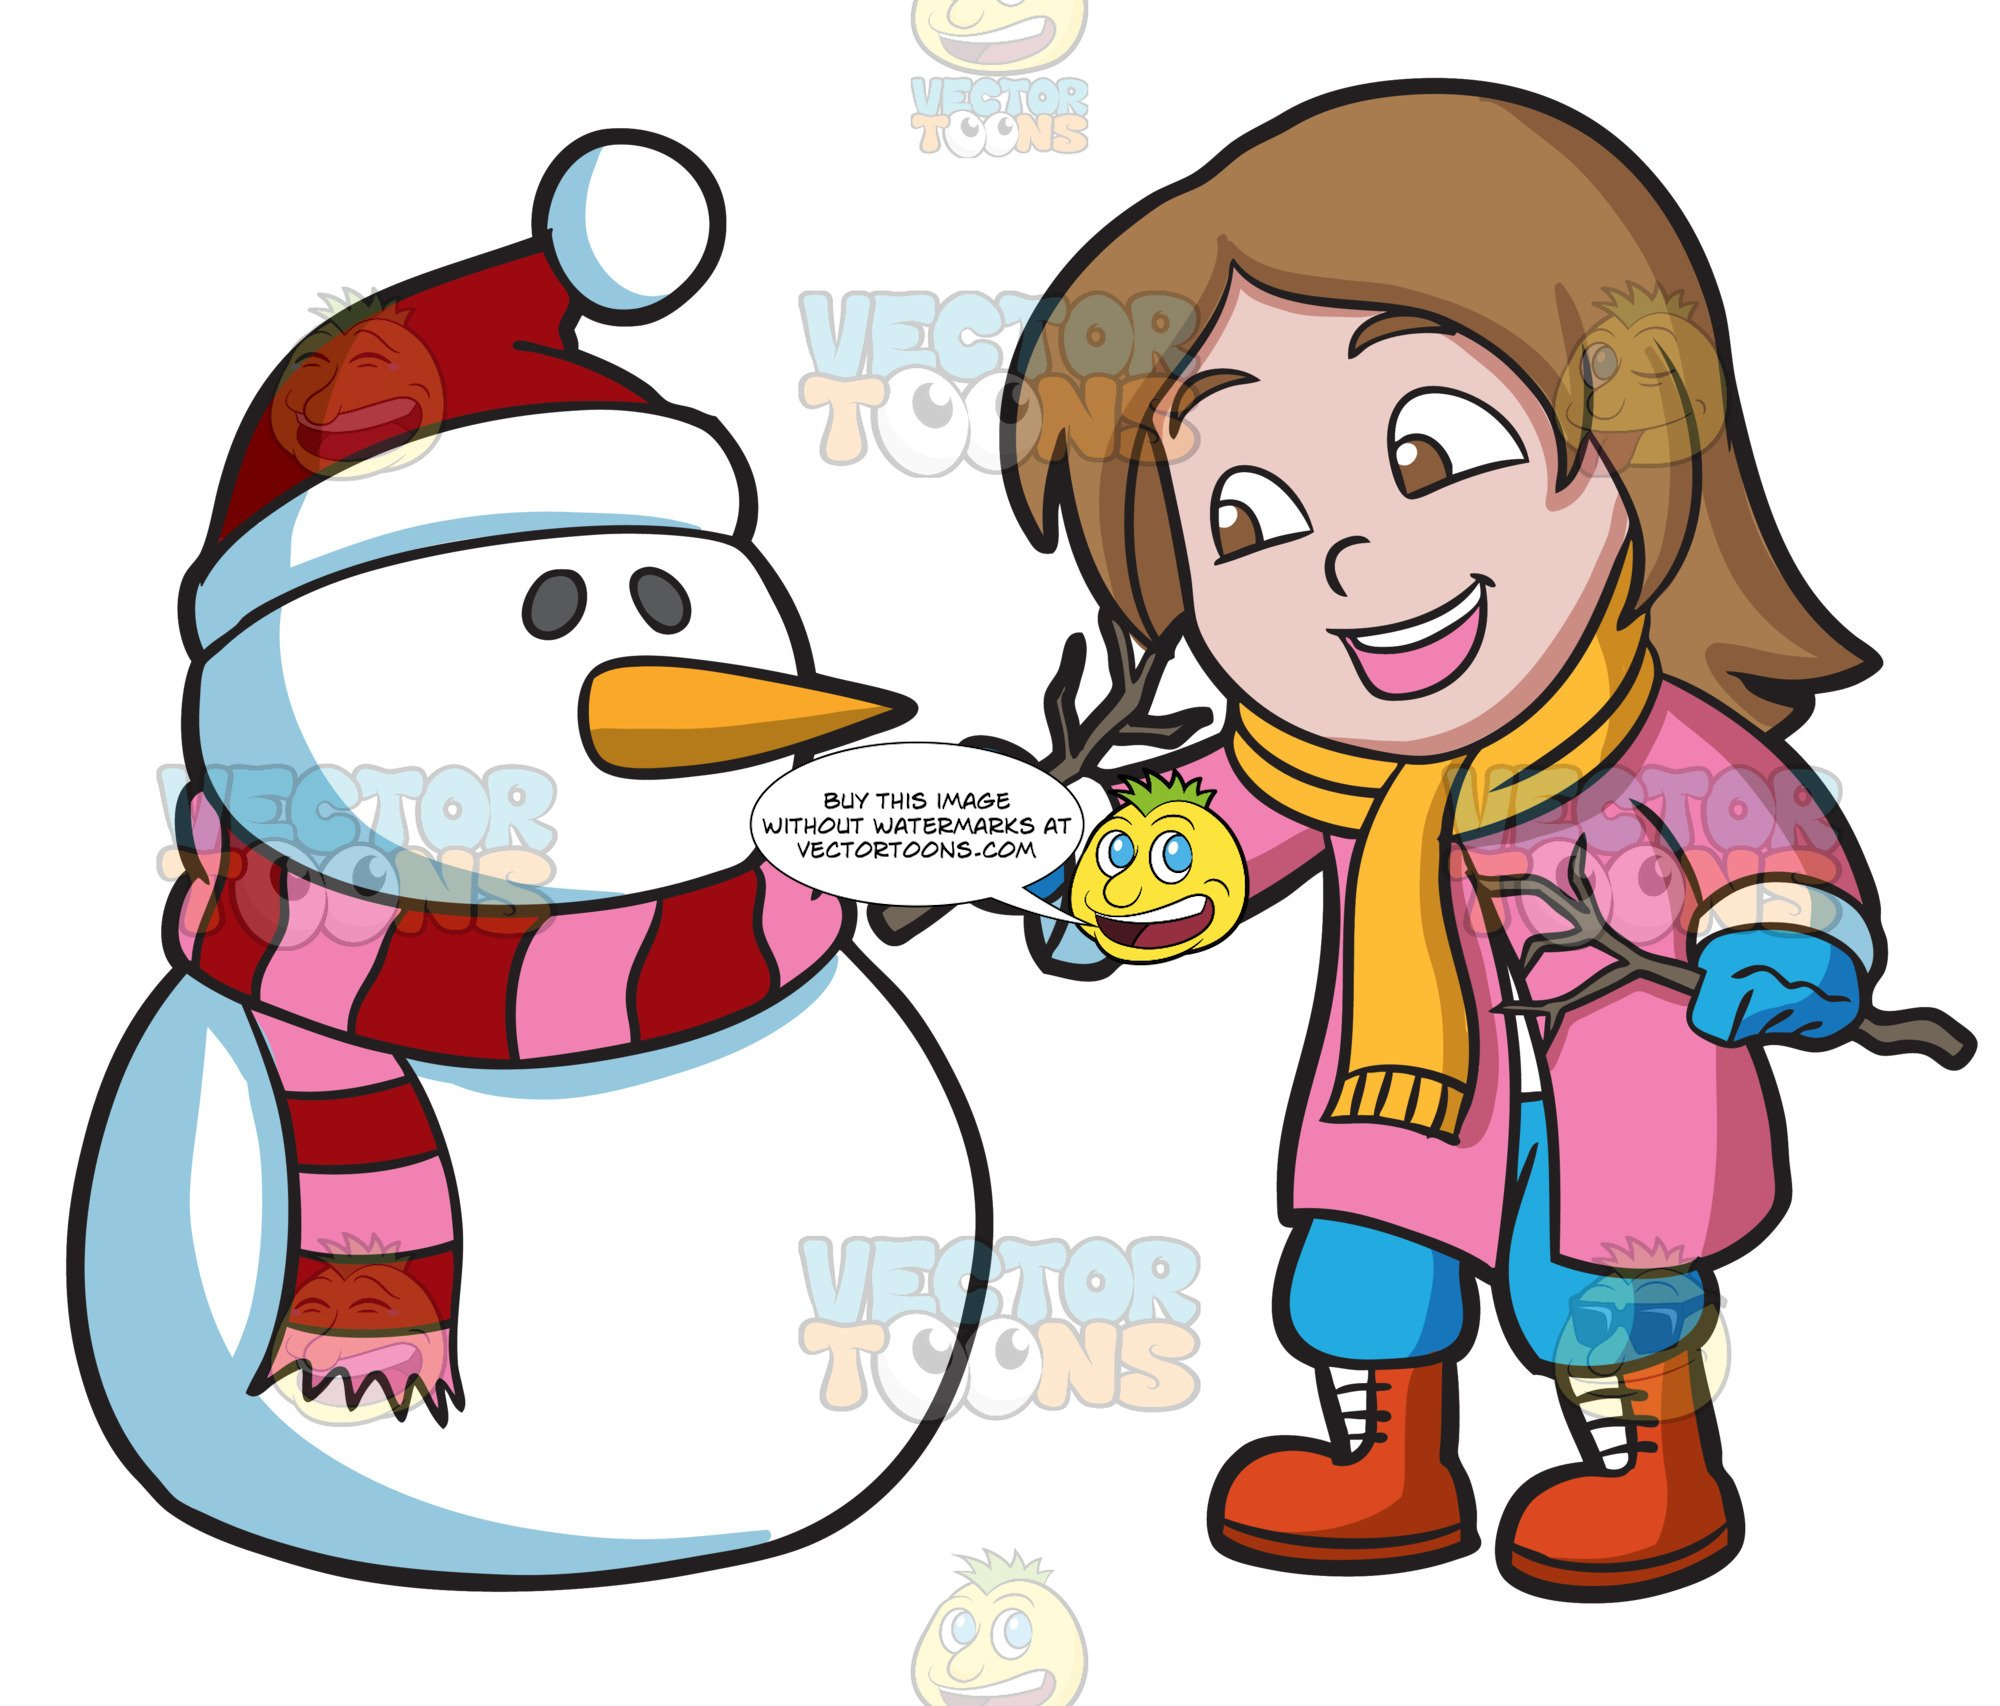 Kids building a snowman clipart graphic black and white download A Girl Placing Tree Stems To Make The Arms Of A Snowman graphic black and white download